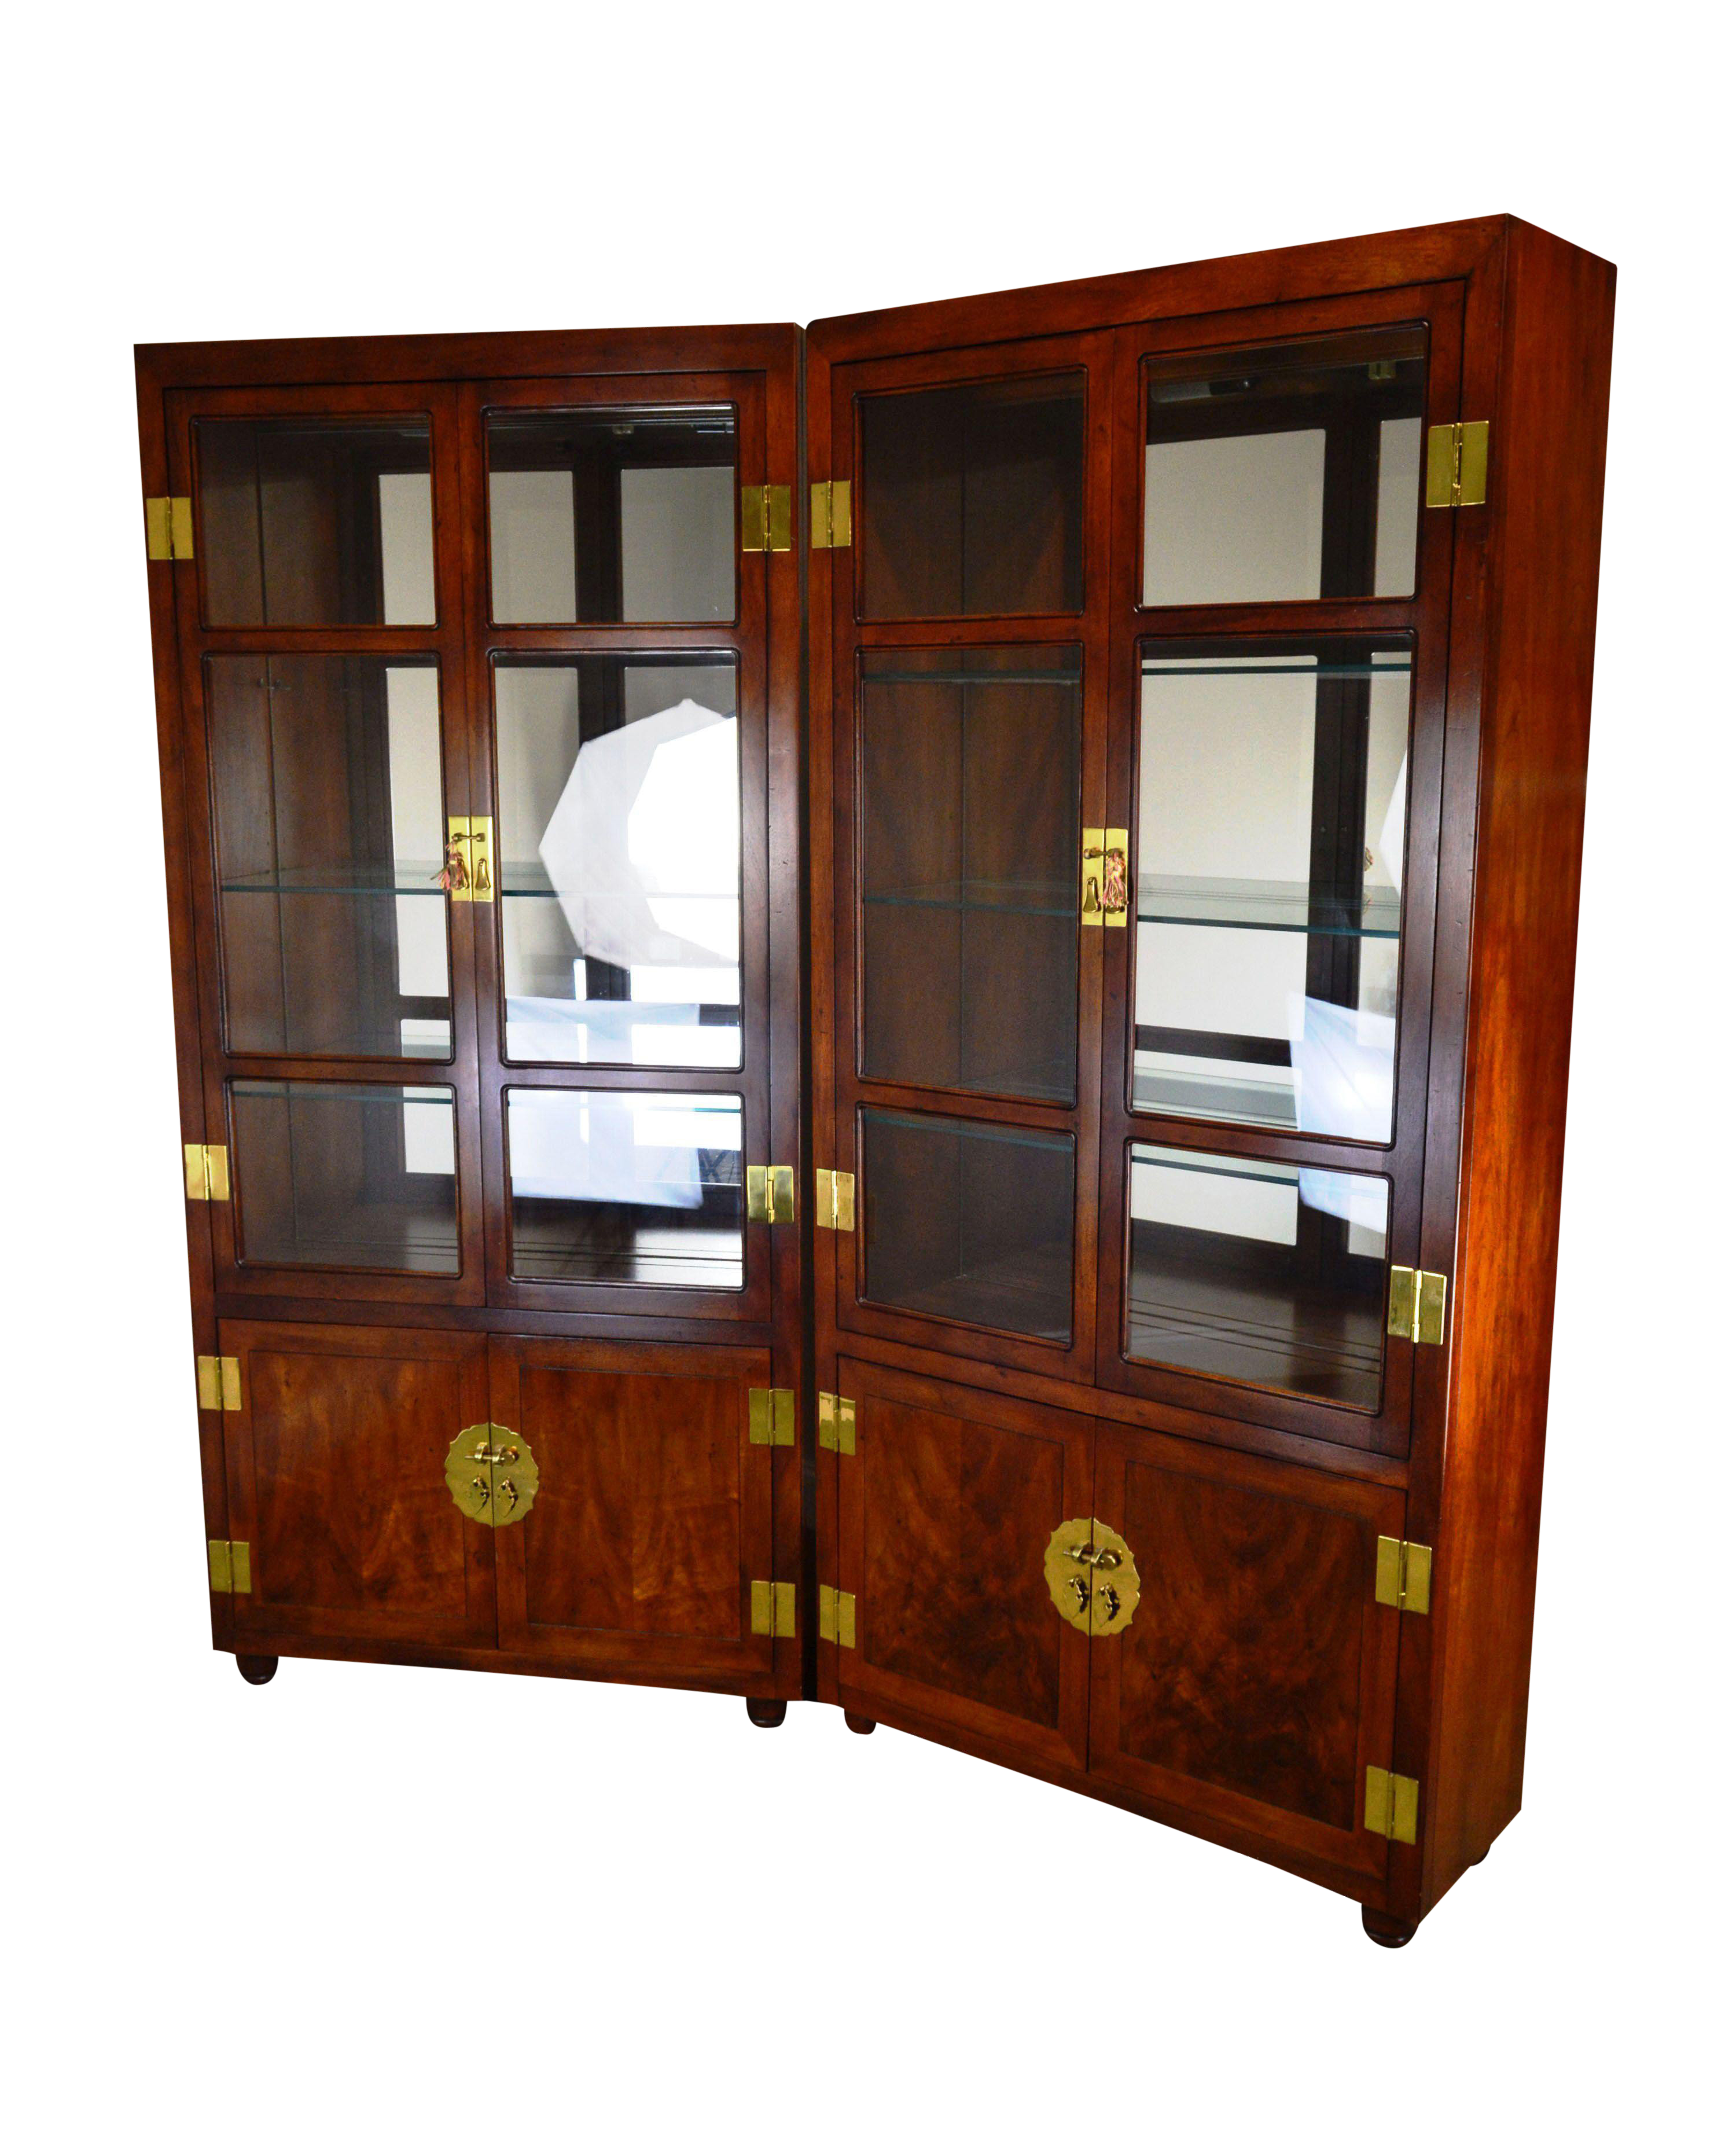 Genial Image Of Curio Display Cabinets